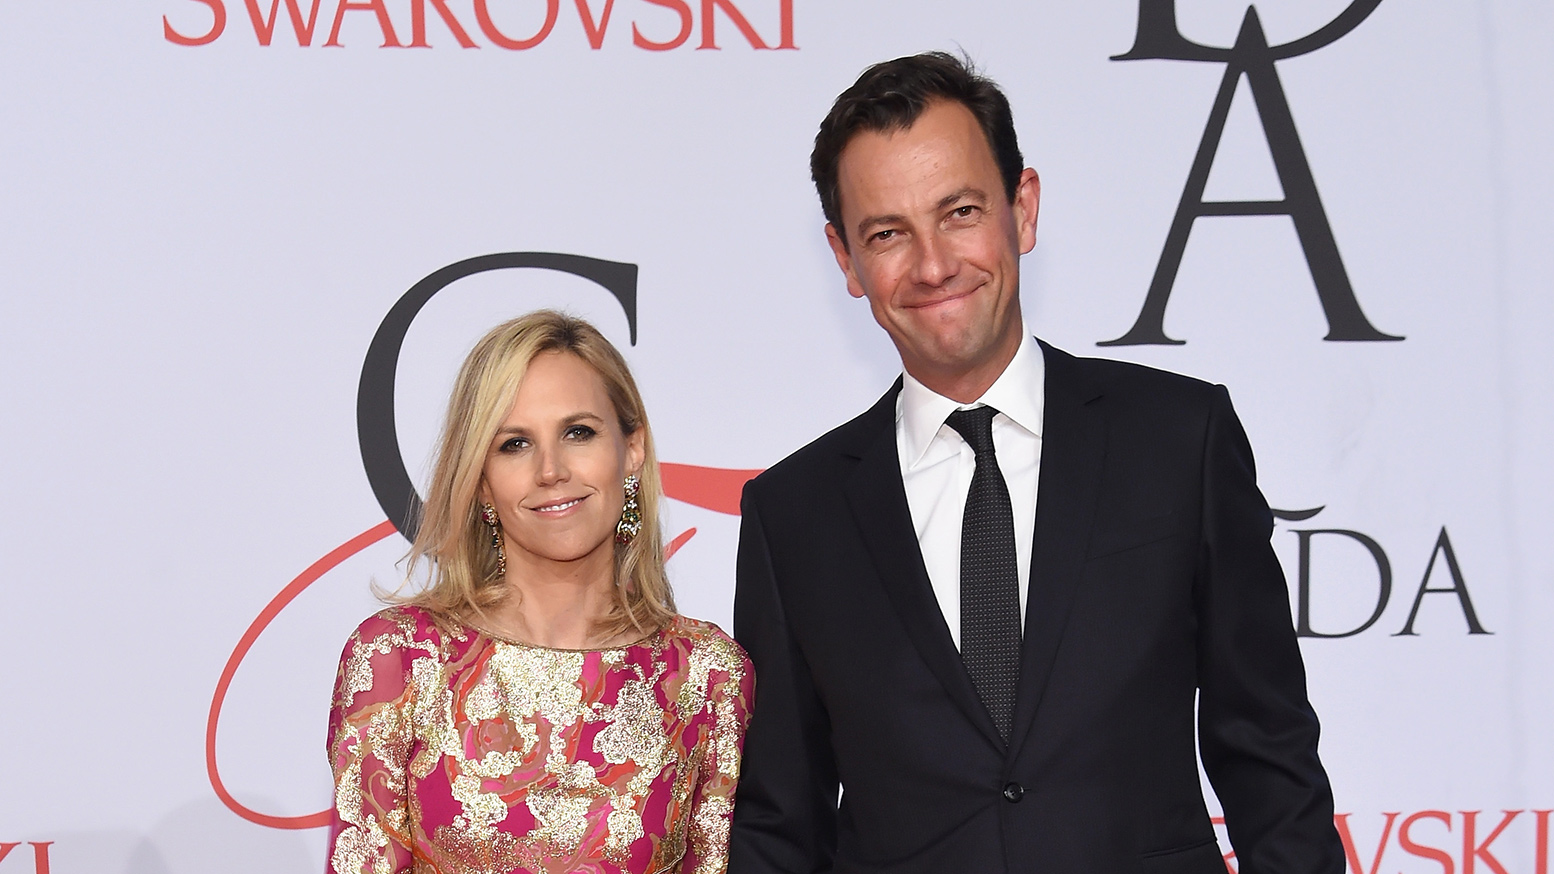 Tory Burch Engaged To Pierre Yves Roussel The Knot News